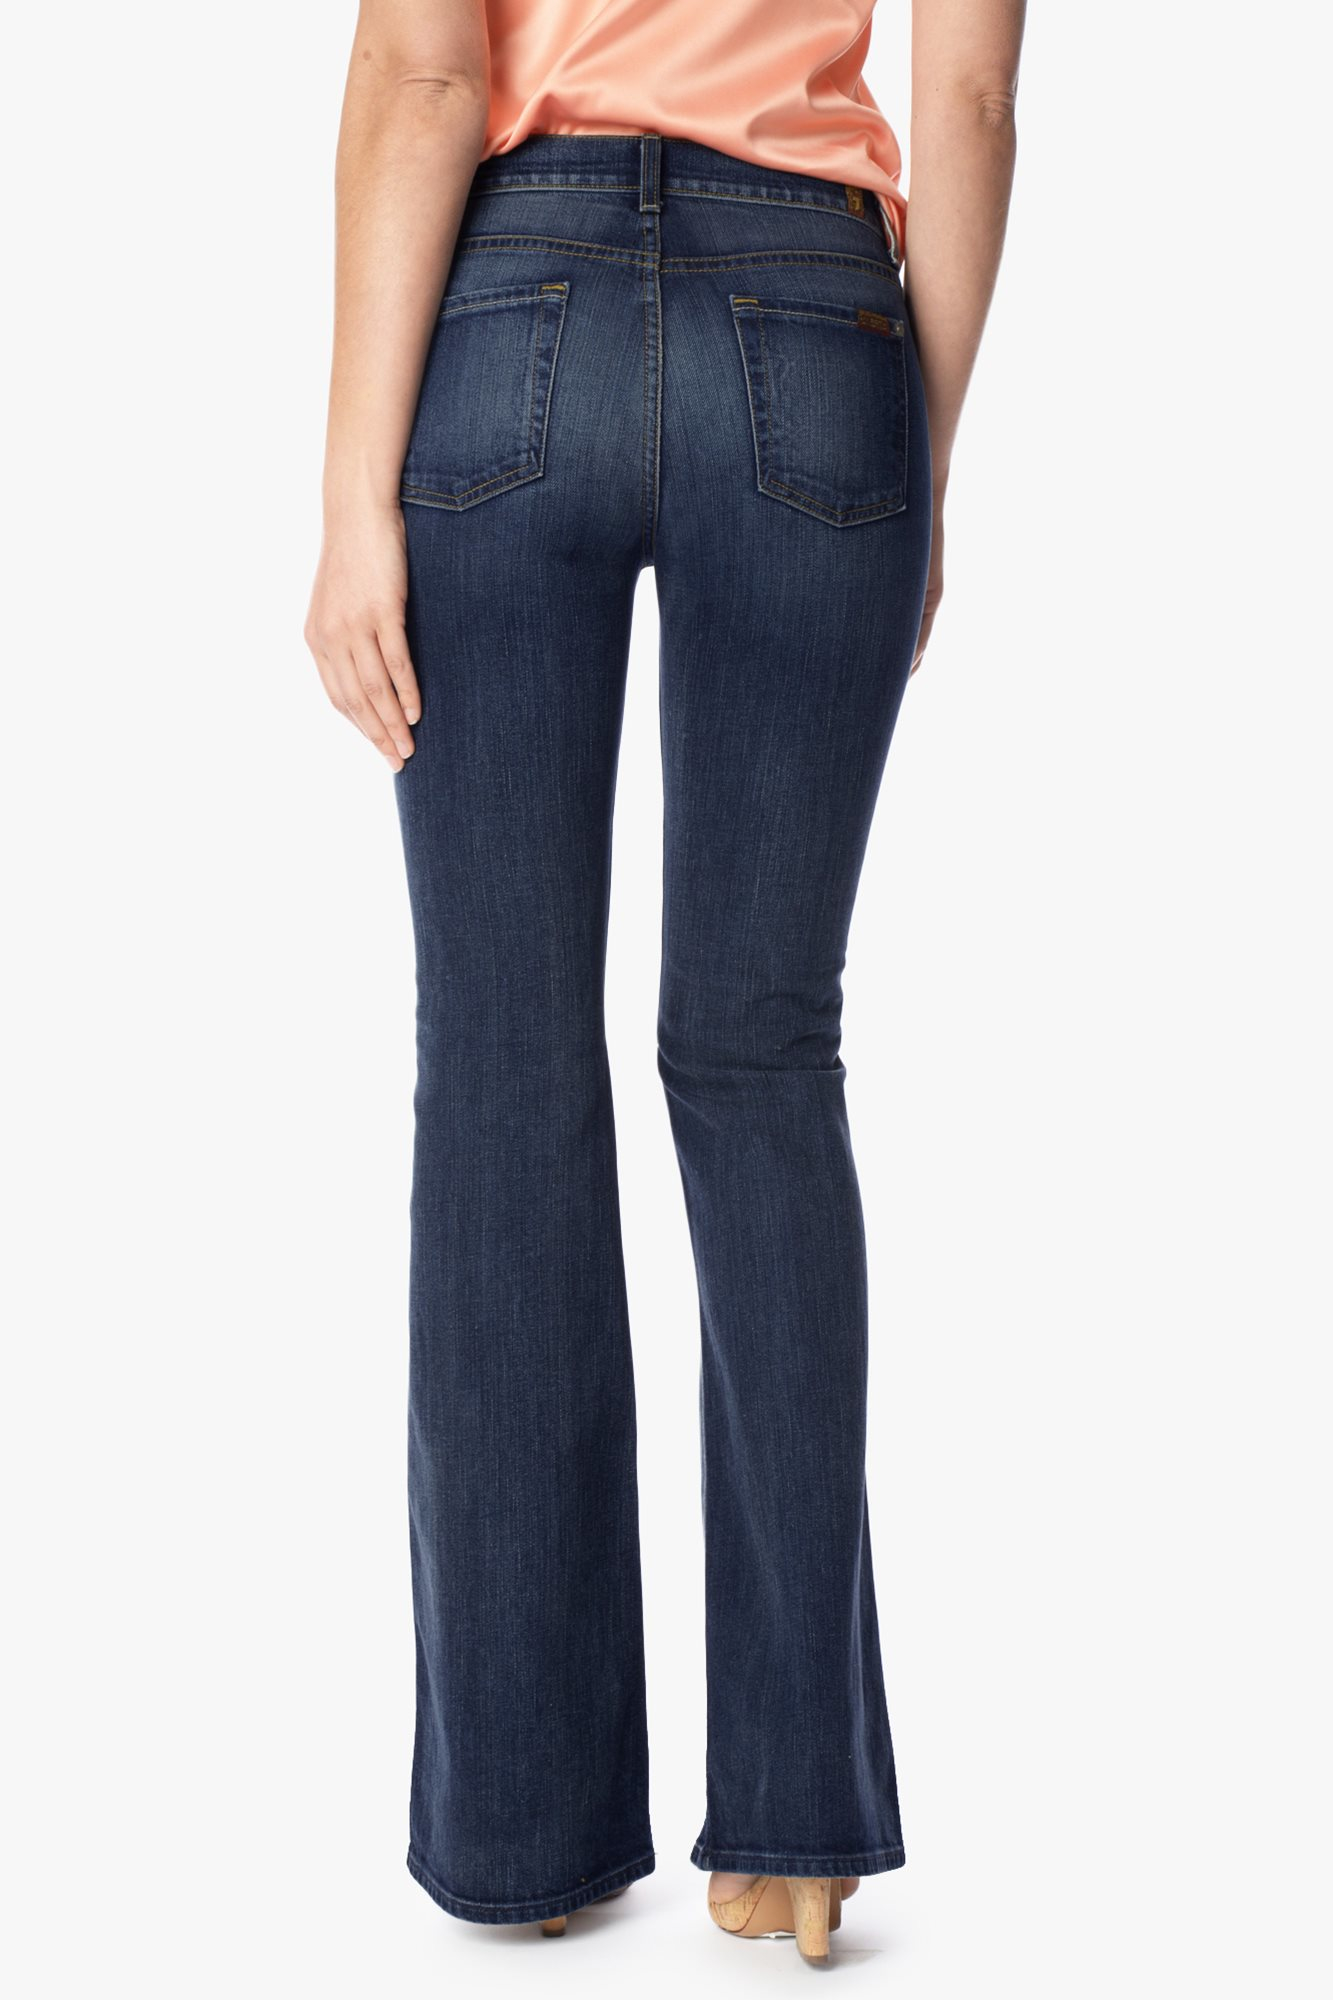 results for womens high waist bootcut jeans Save womens high waist bootcut jeans to get e-mail alerts and updates on your eBay Feed. Unfollow womens high waist bootcut jeans to stop getting updates on your eBay feed.